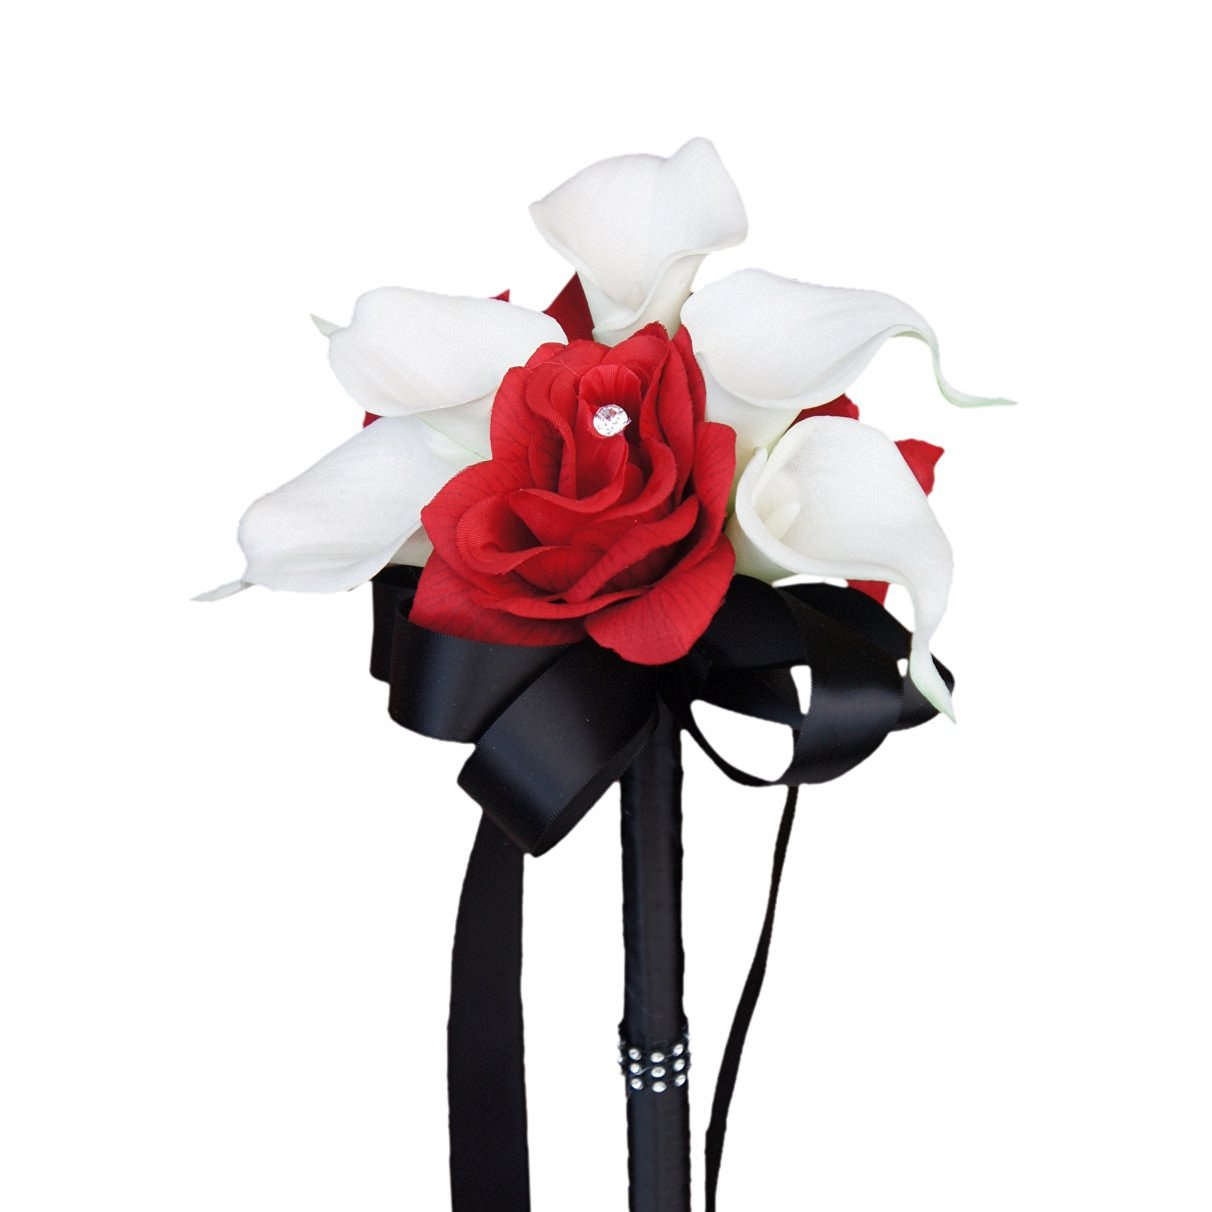 Cheap calla lily and rose find calla lily and rose deals on line at get quotations wedding bouquet apple red silk rose white real touch calla lily izmirmasajfo